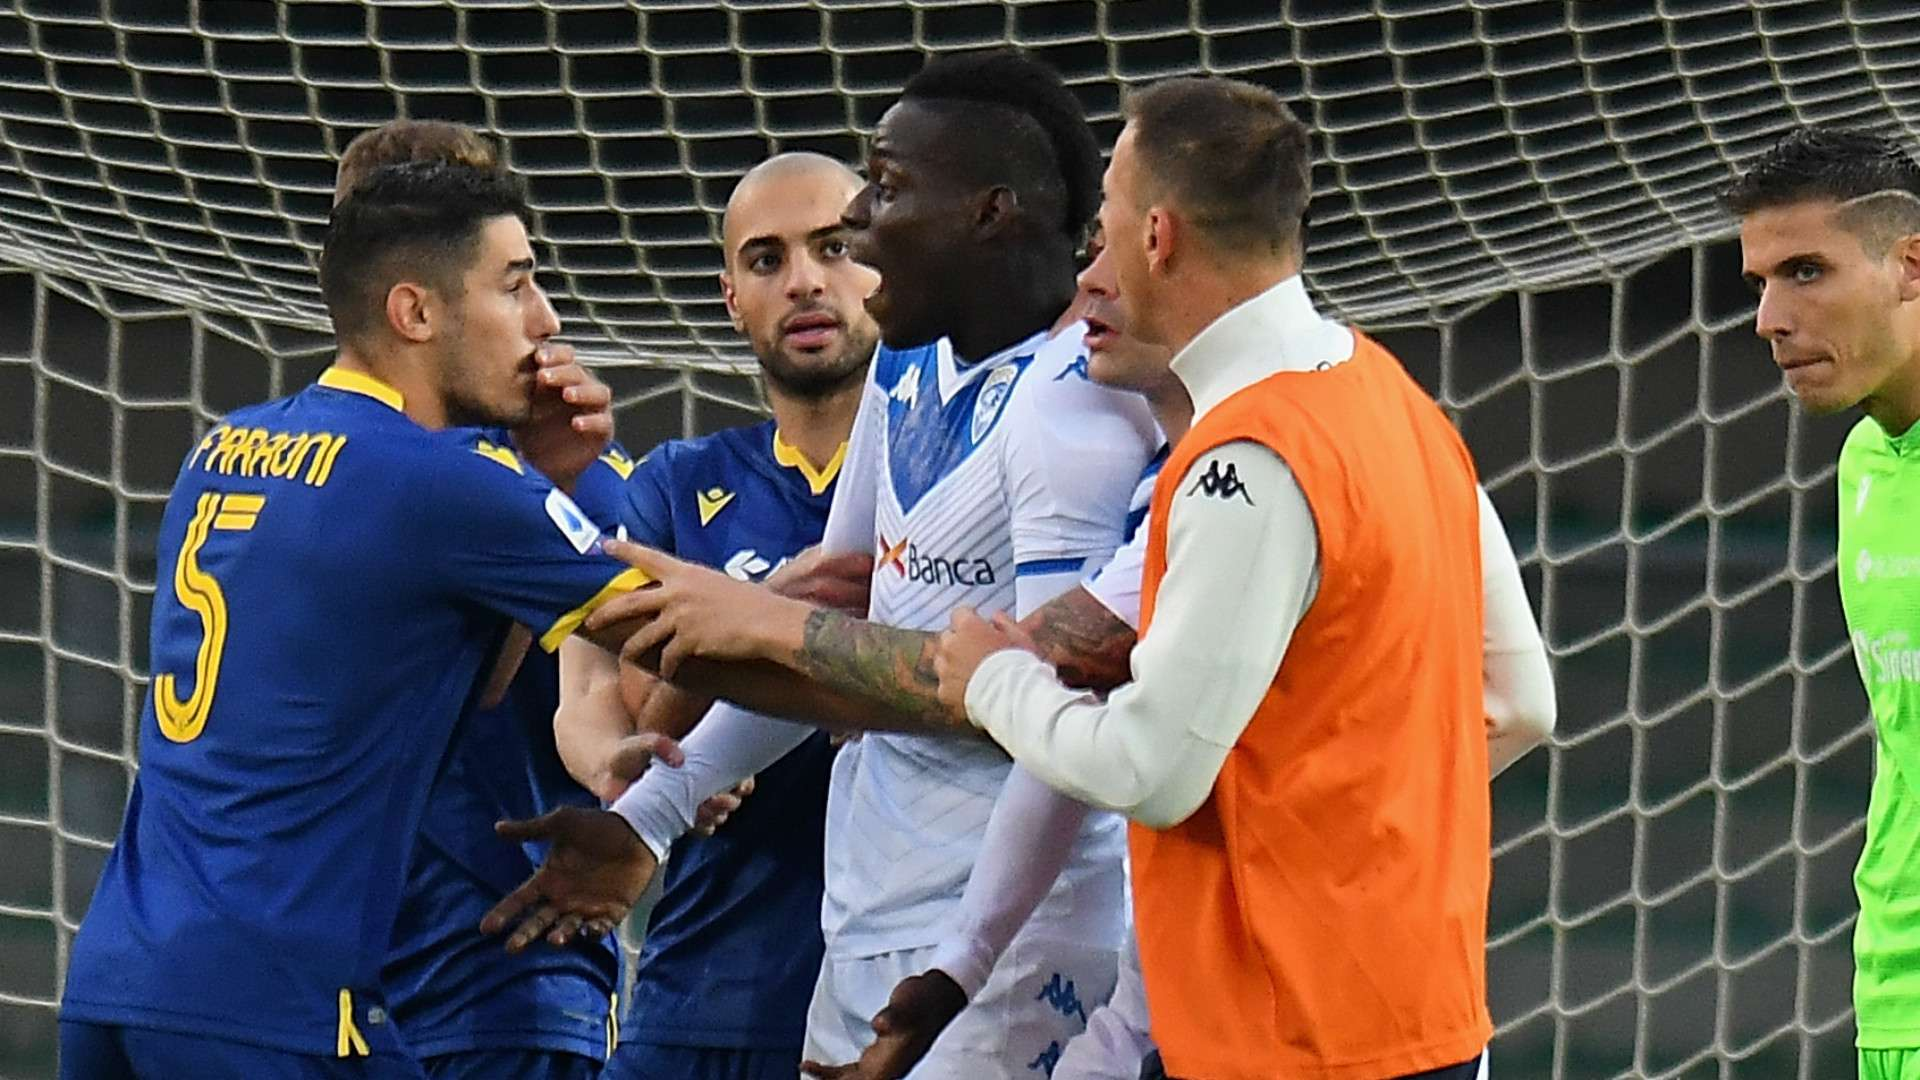 His problem, not ours' - Balotelli racist abuse denied by Verona ...